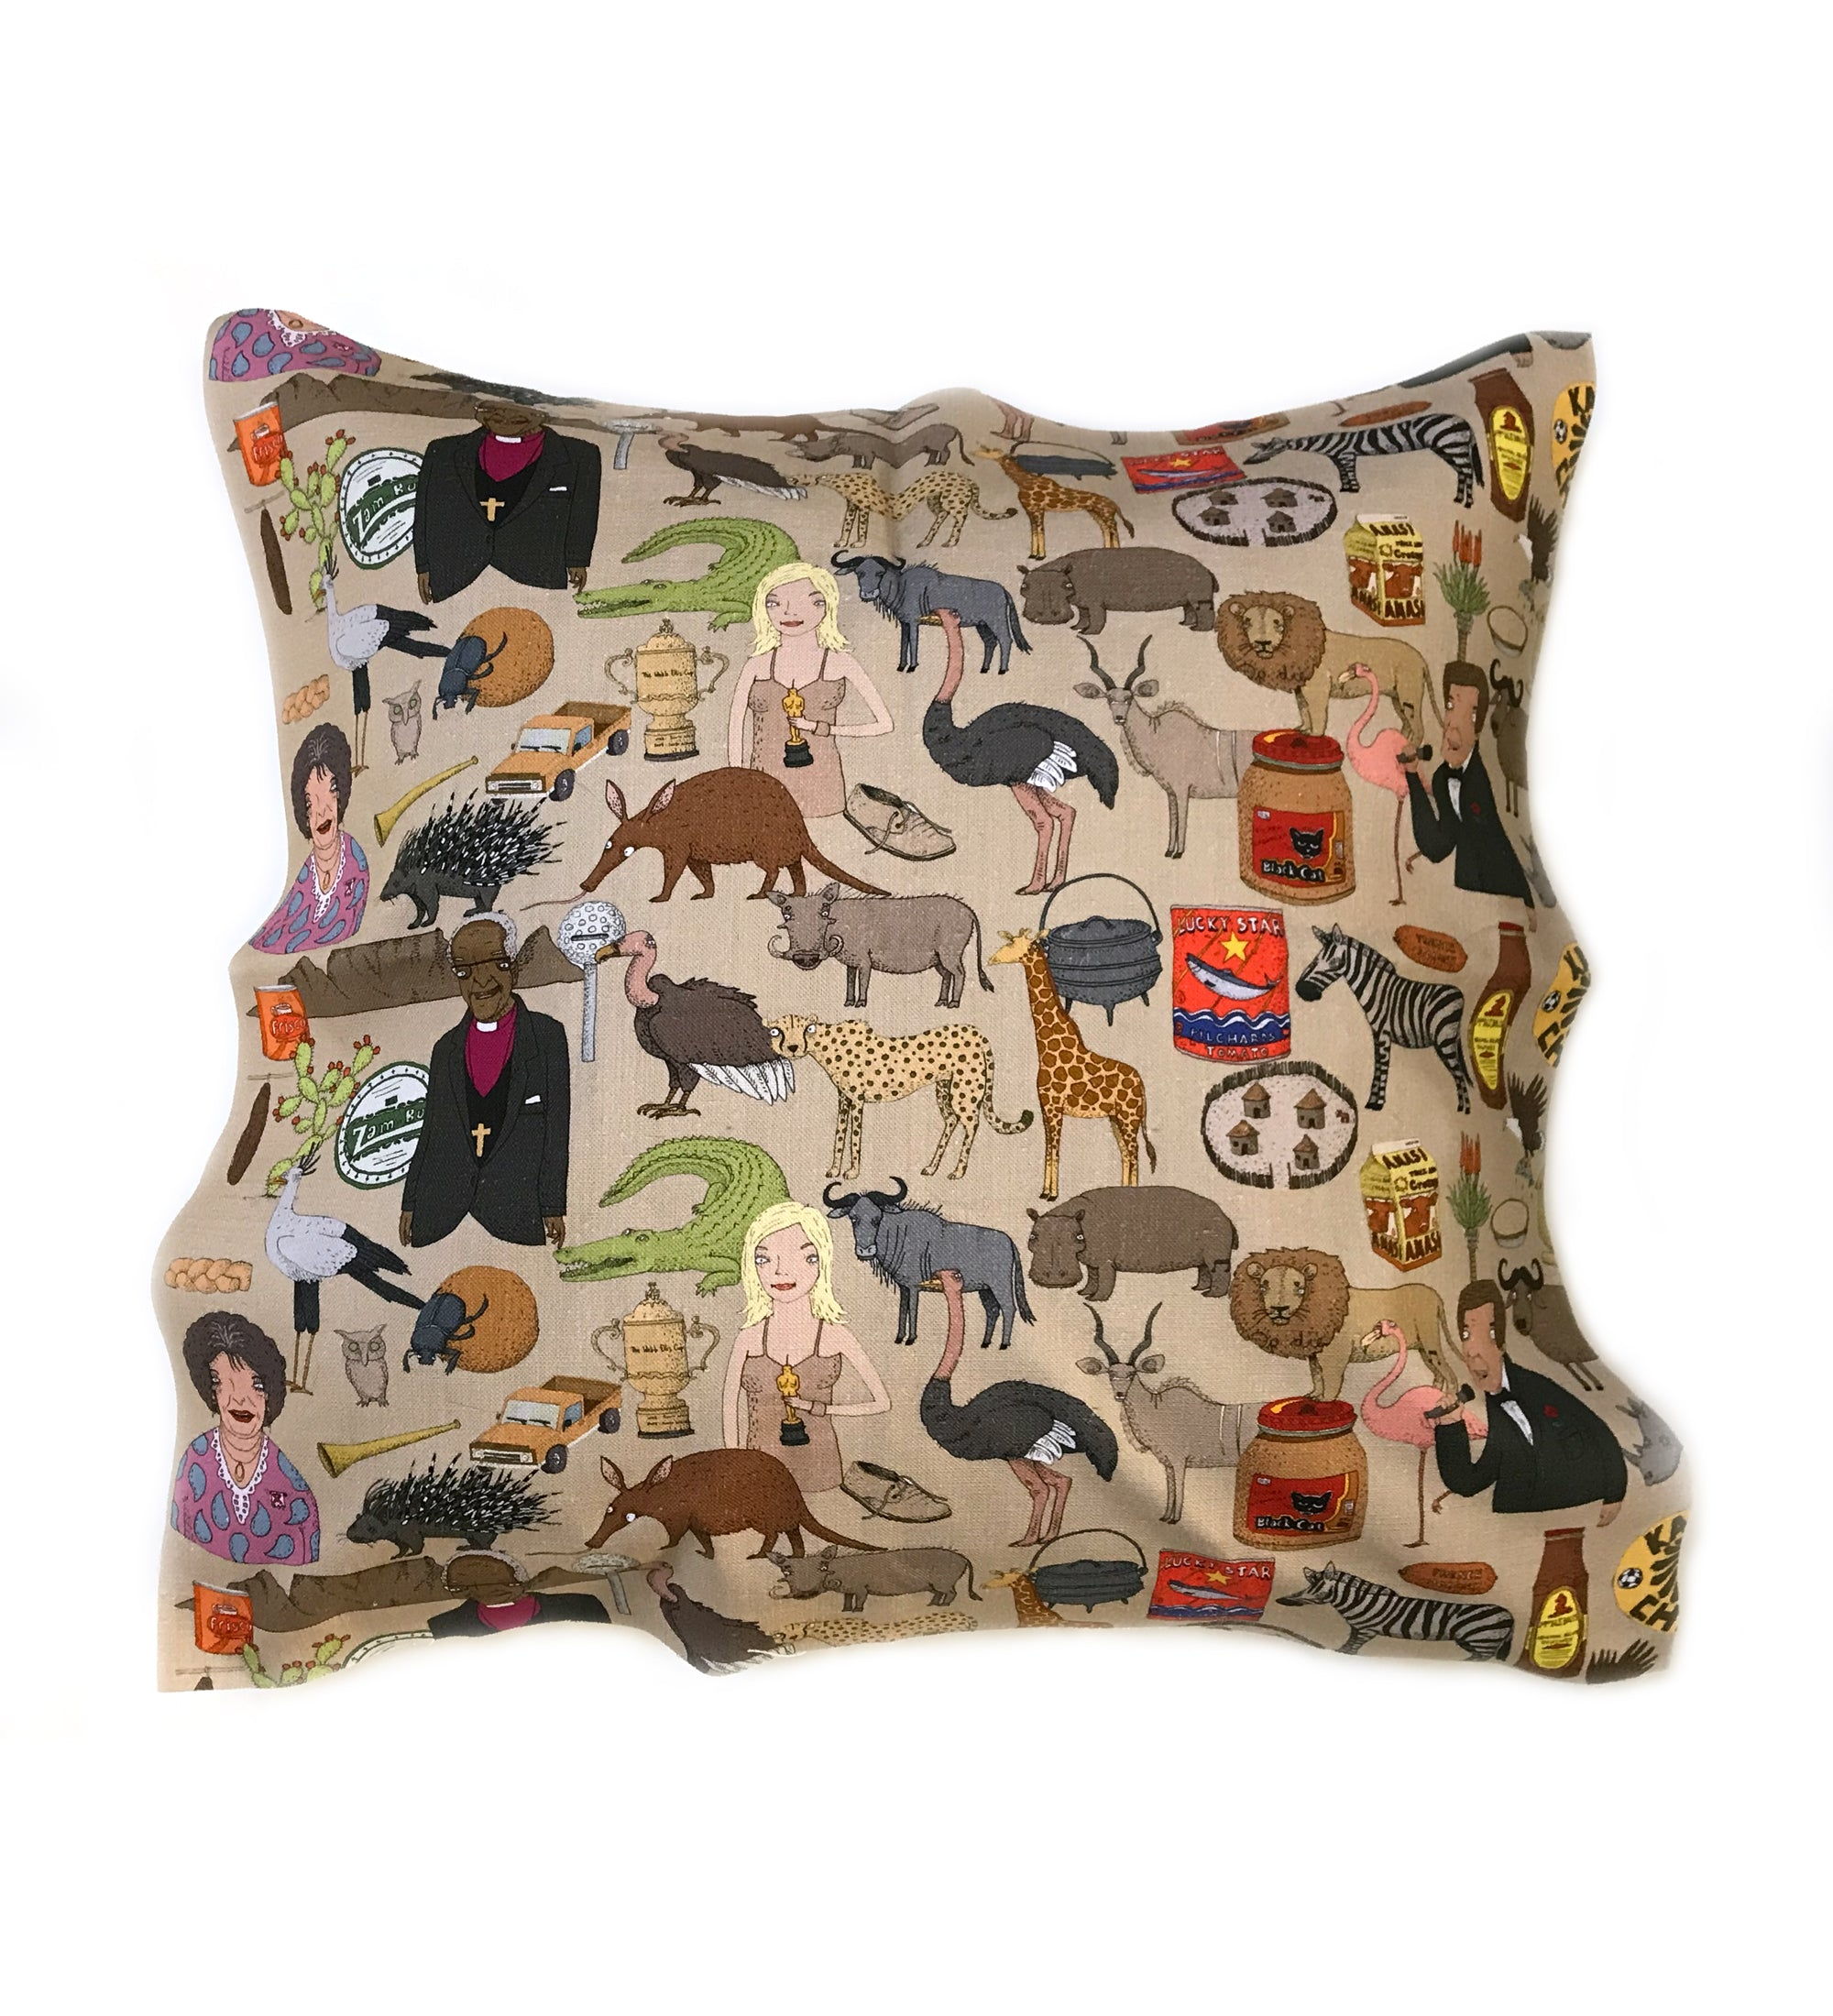 Iconic SA cushion cover 60x60. south african fabric. alex latimer. evita. lucky star. black cat peanut butter. zambuk